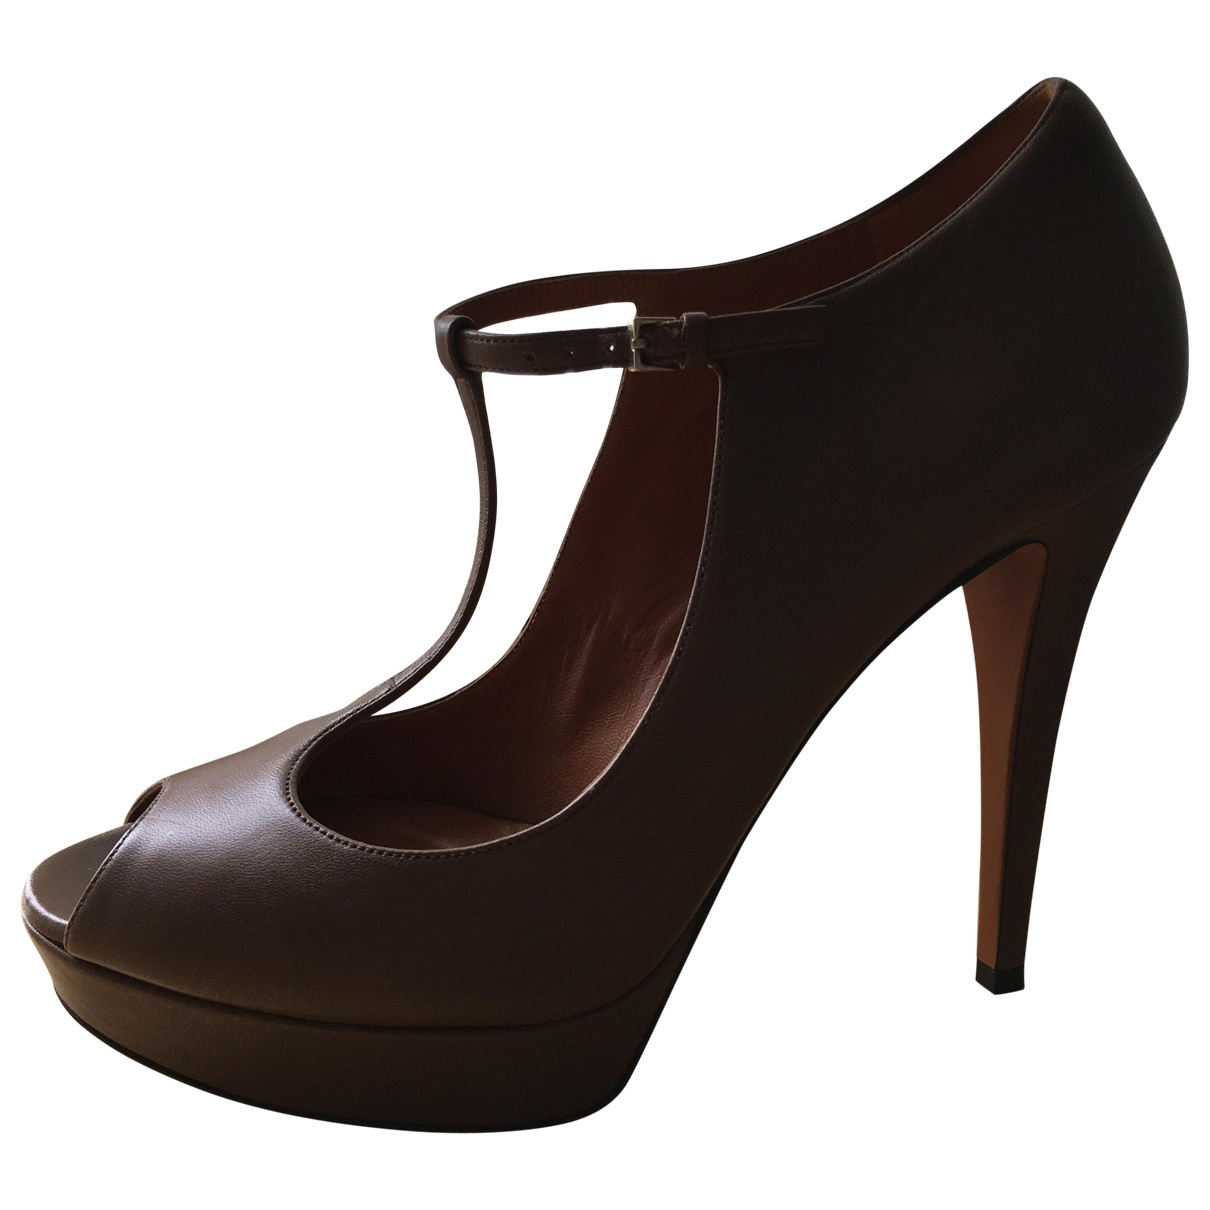 Gucci \N Brown Leather Heels for Women 40 EU